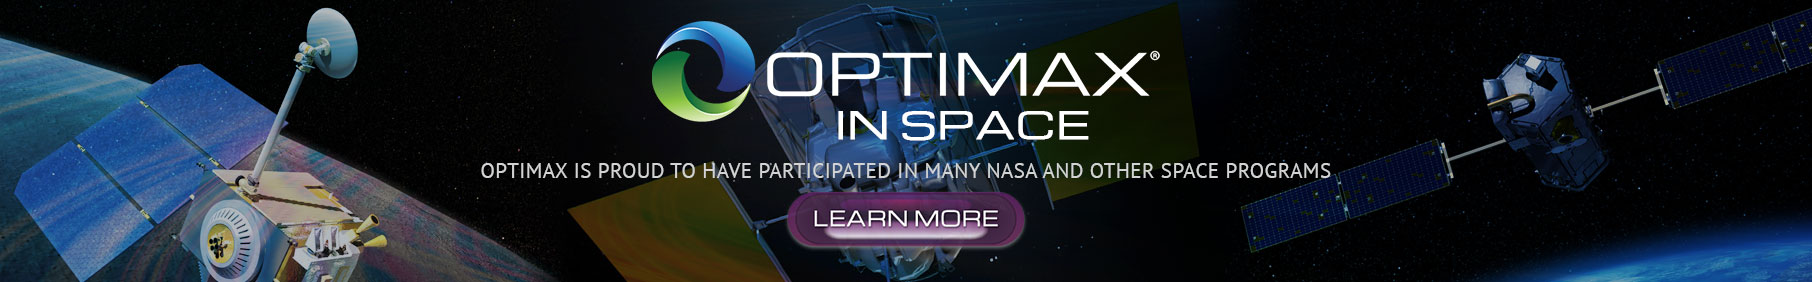 Banner-Innovation-Optimax-in-Space